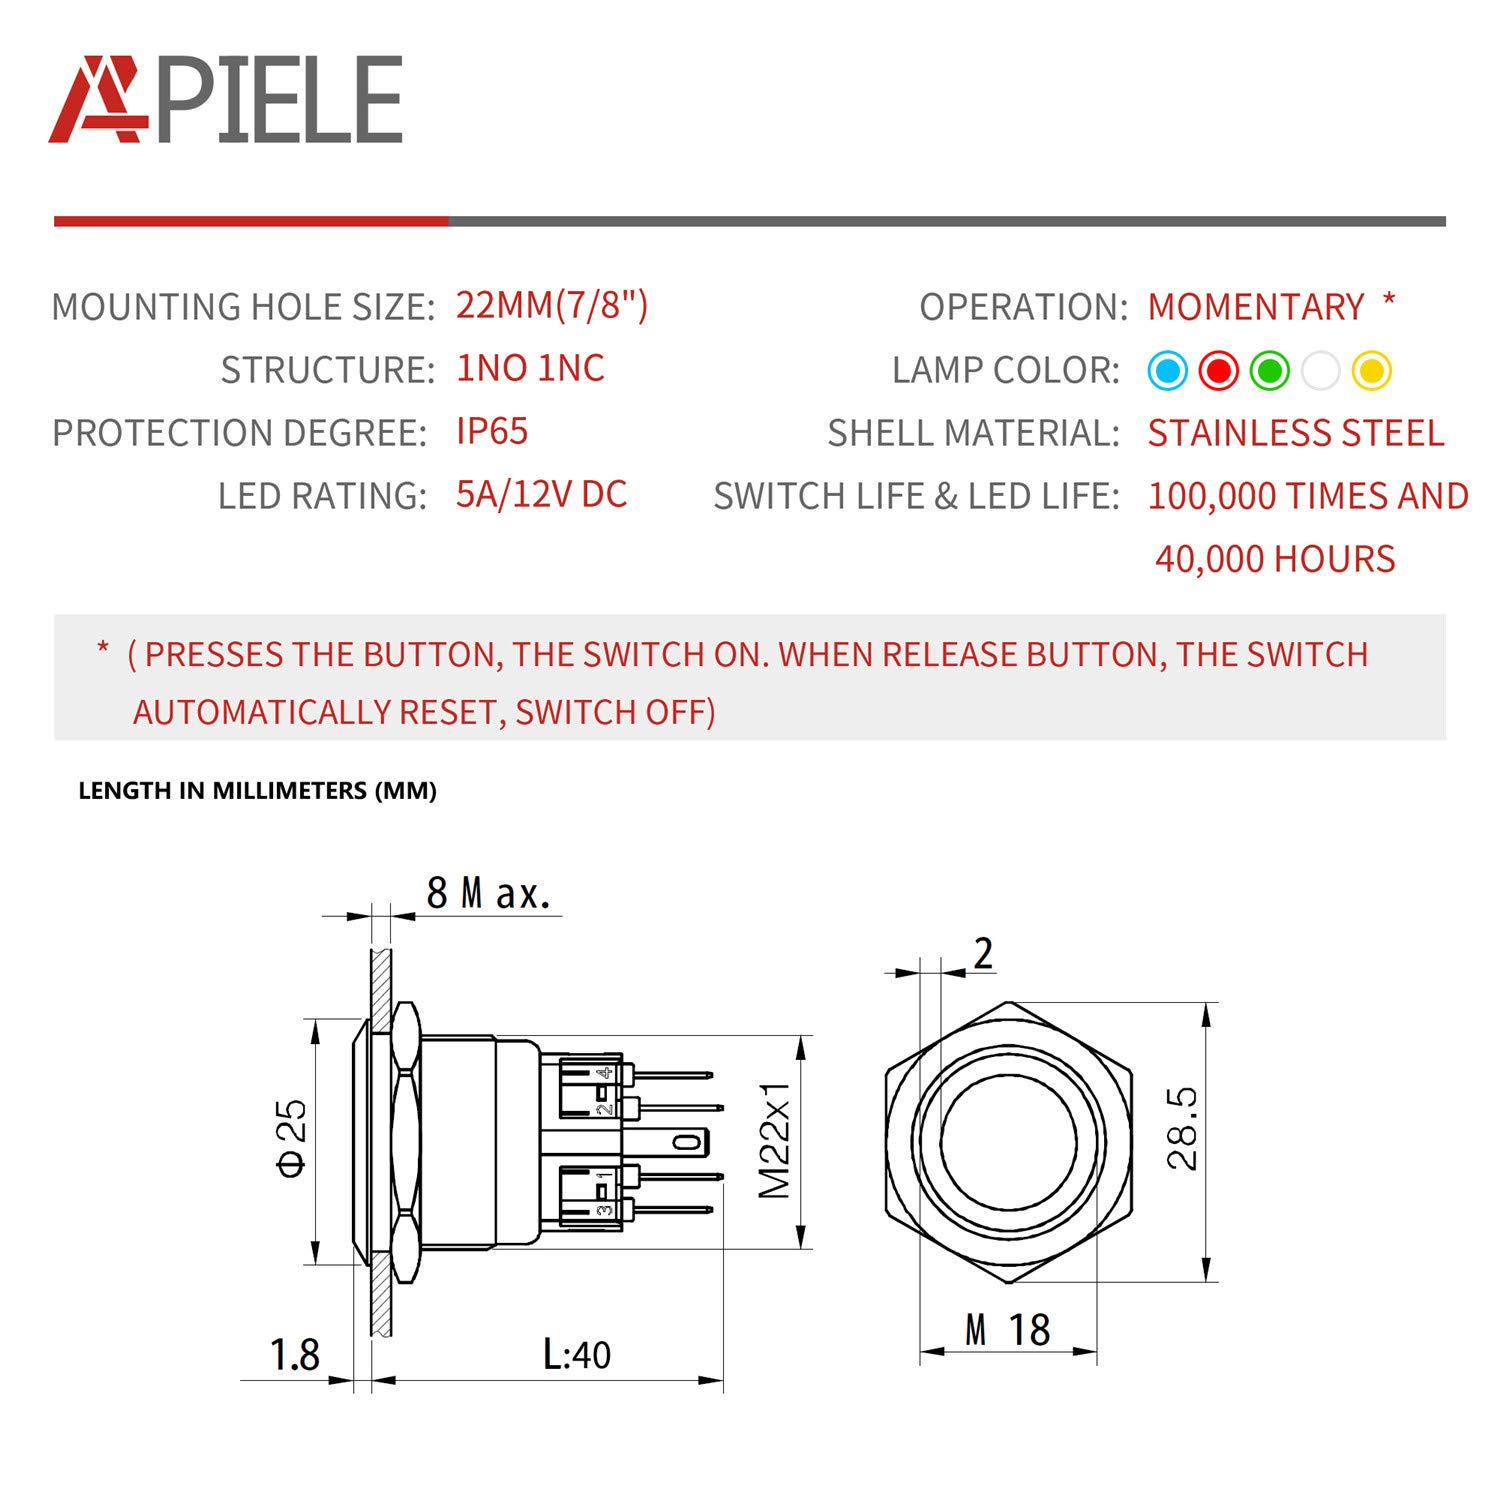 API-ELE 22mm Momentary Push Button Switch 12V Angel Eye LED Waterproof Stainless Steel Round Metal Self-Reset 7//8 1NO 1NC with Pigtail Blue 3 Year Warranty